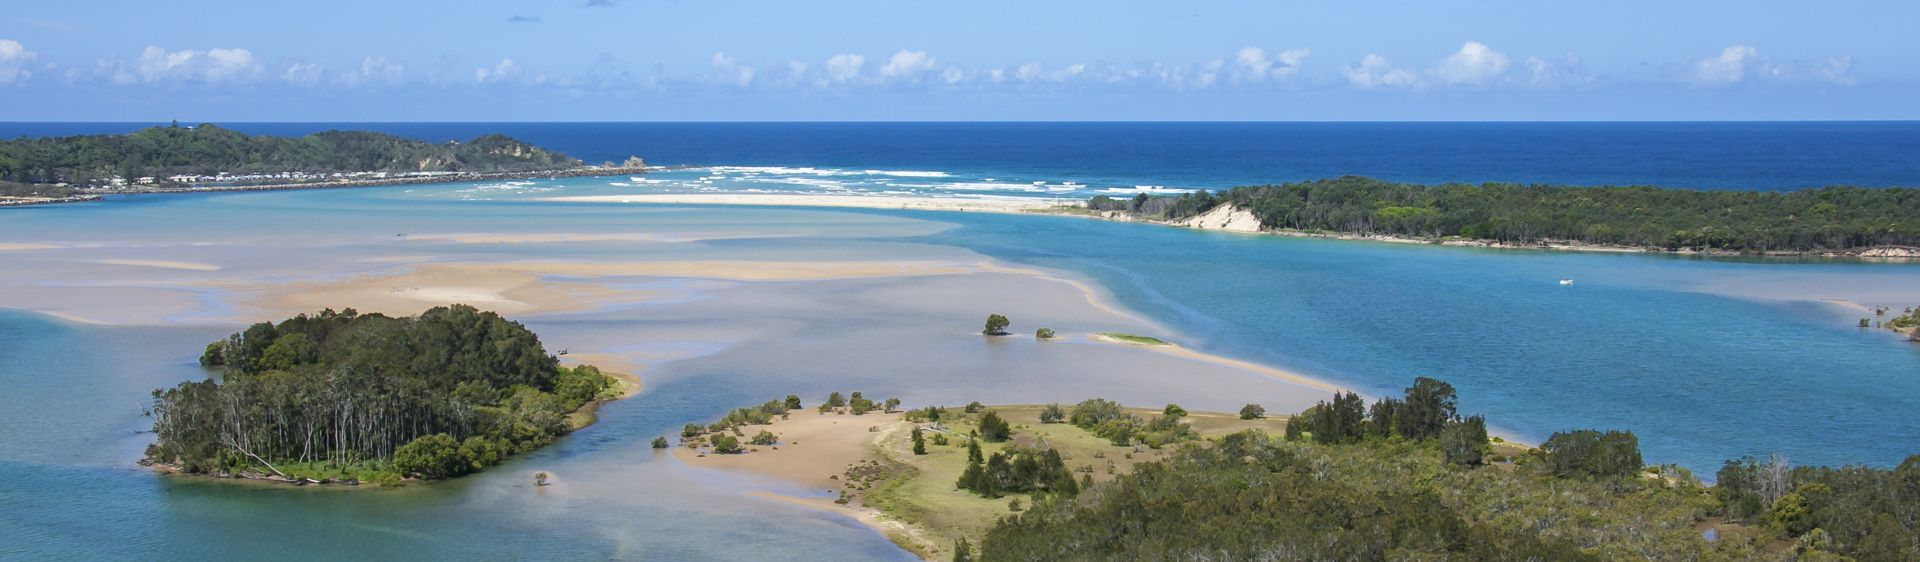 The mouth of the Nambucca River in Nambucca Heads, NSW, Australia.